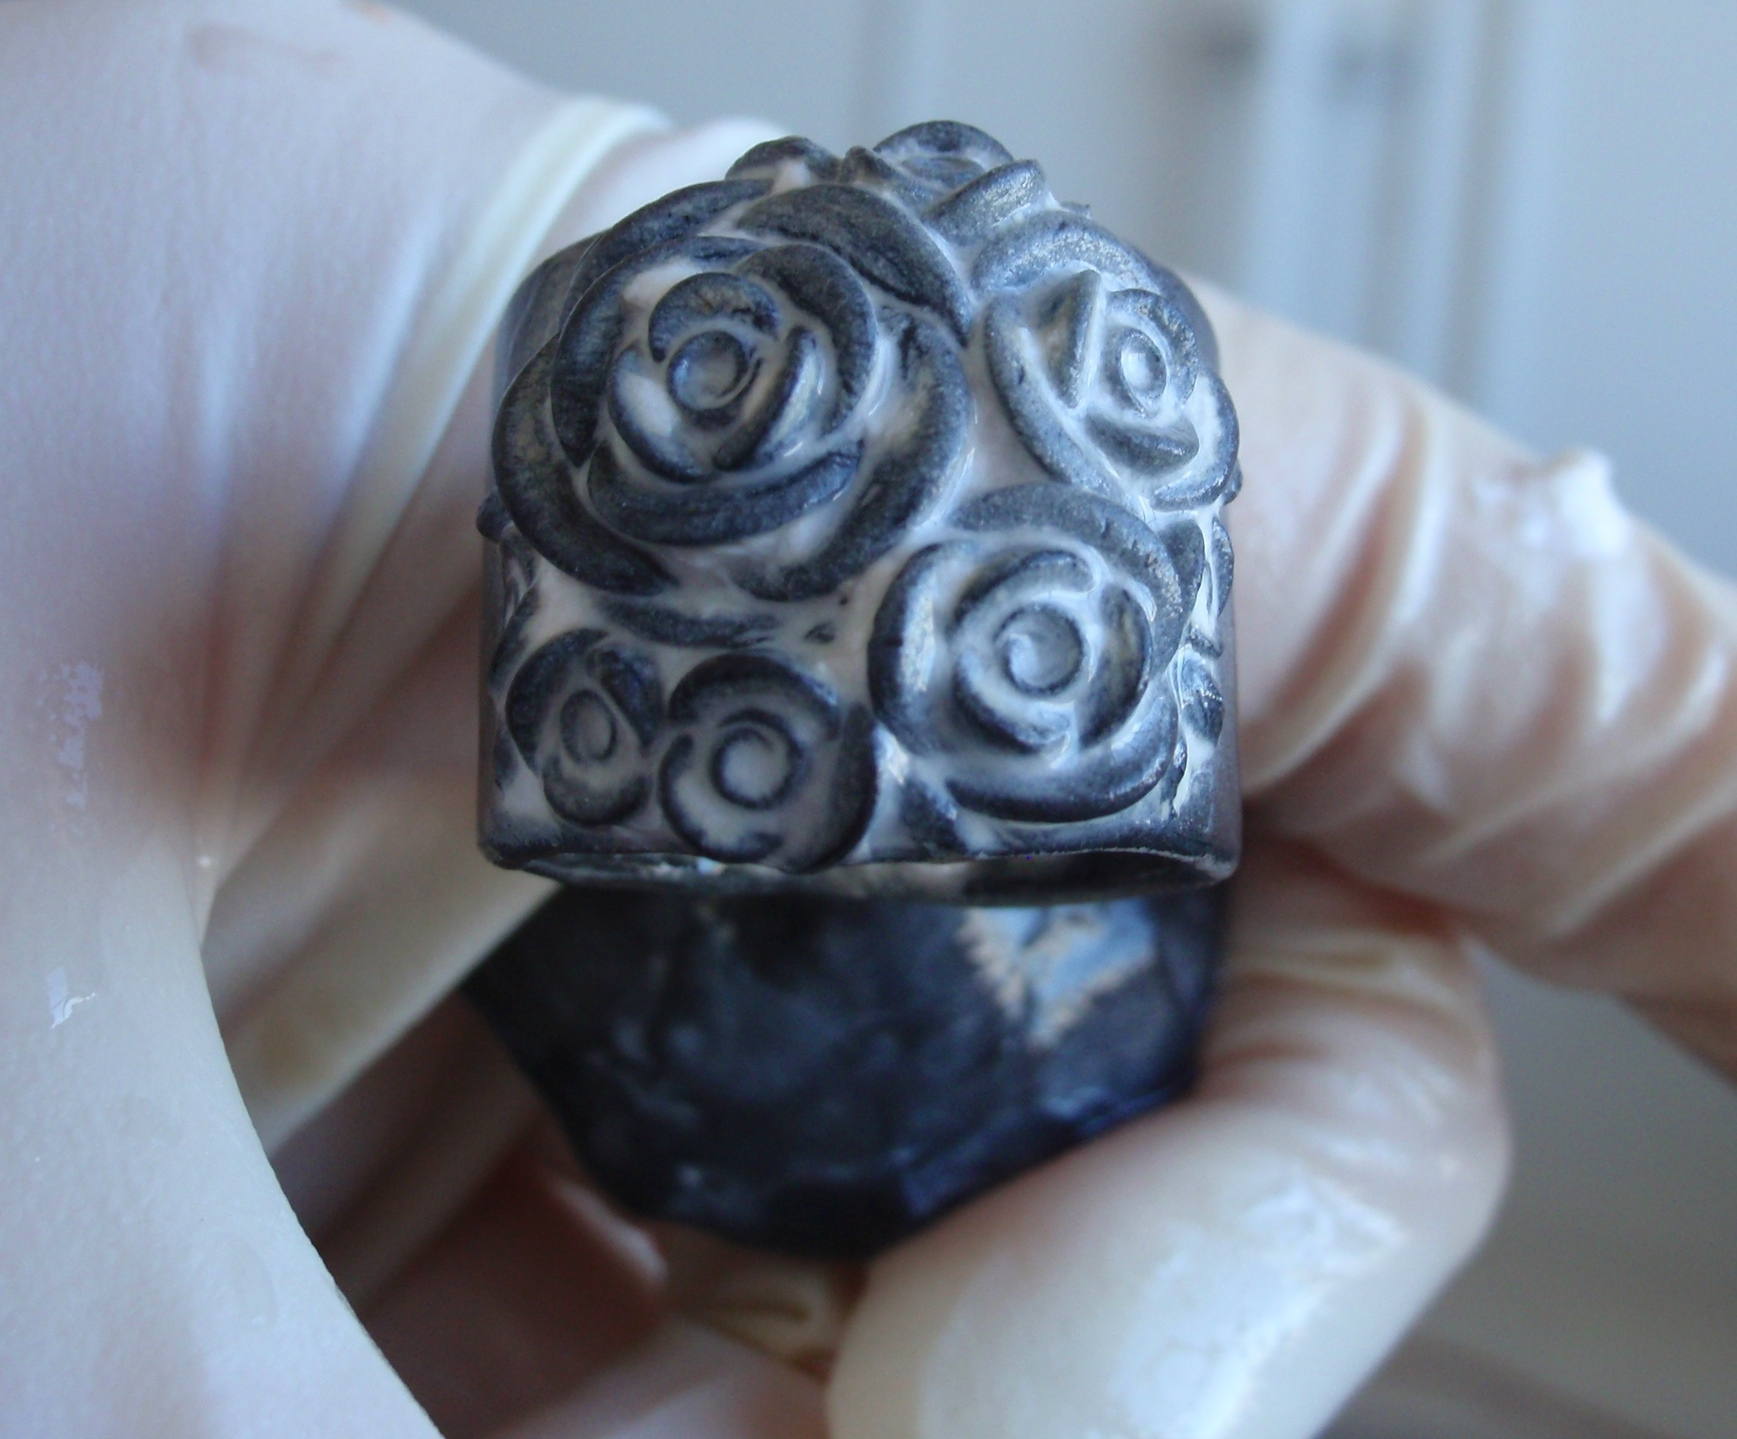 A freshly cast ring with several roses, before any cleaning.